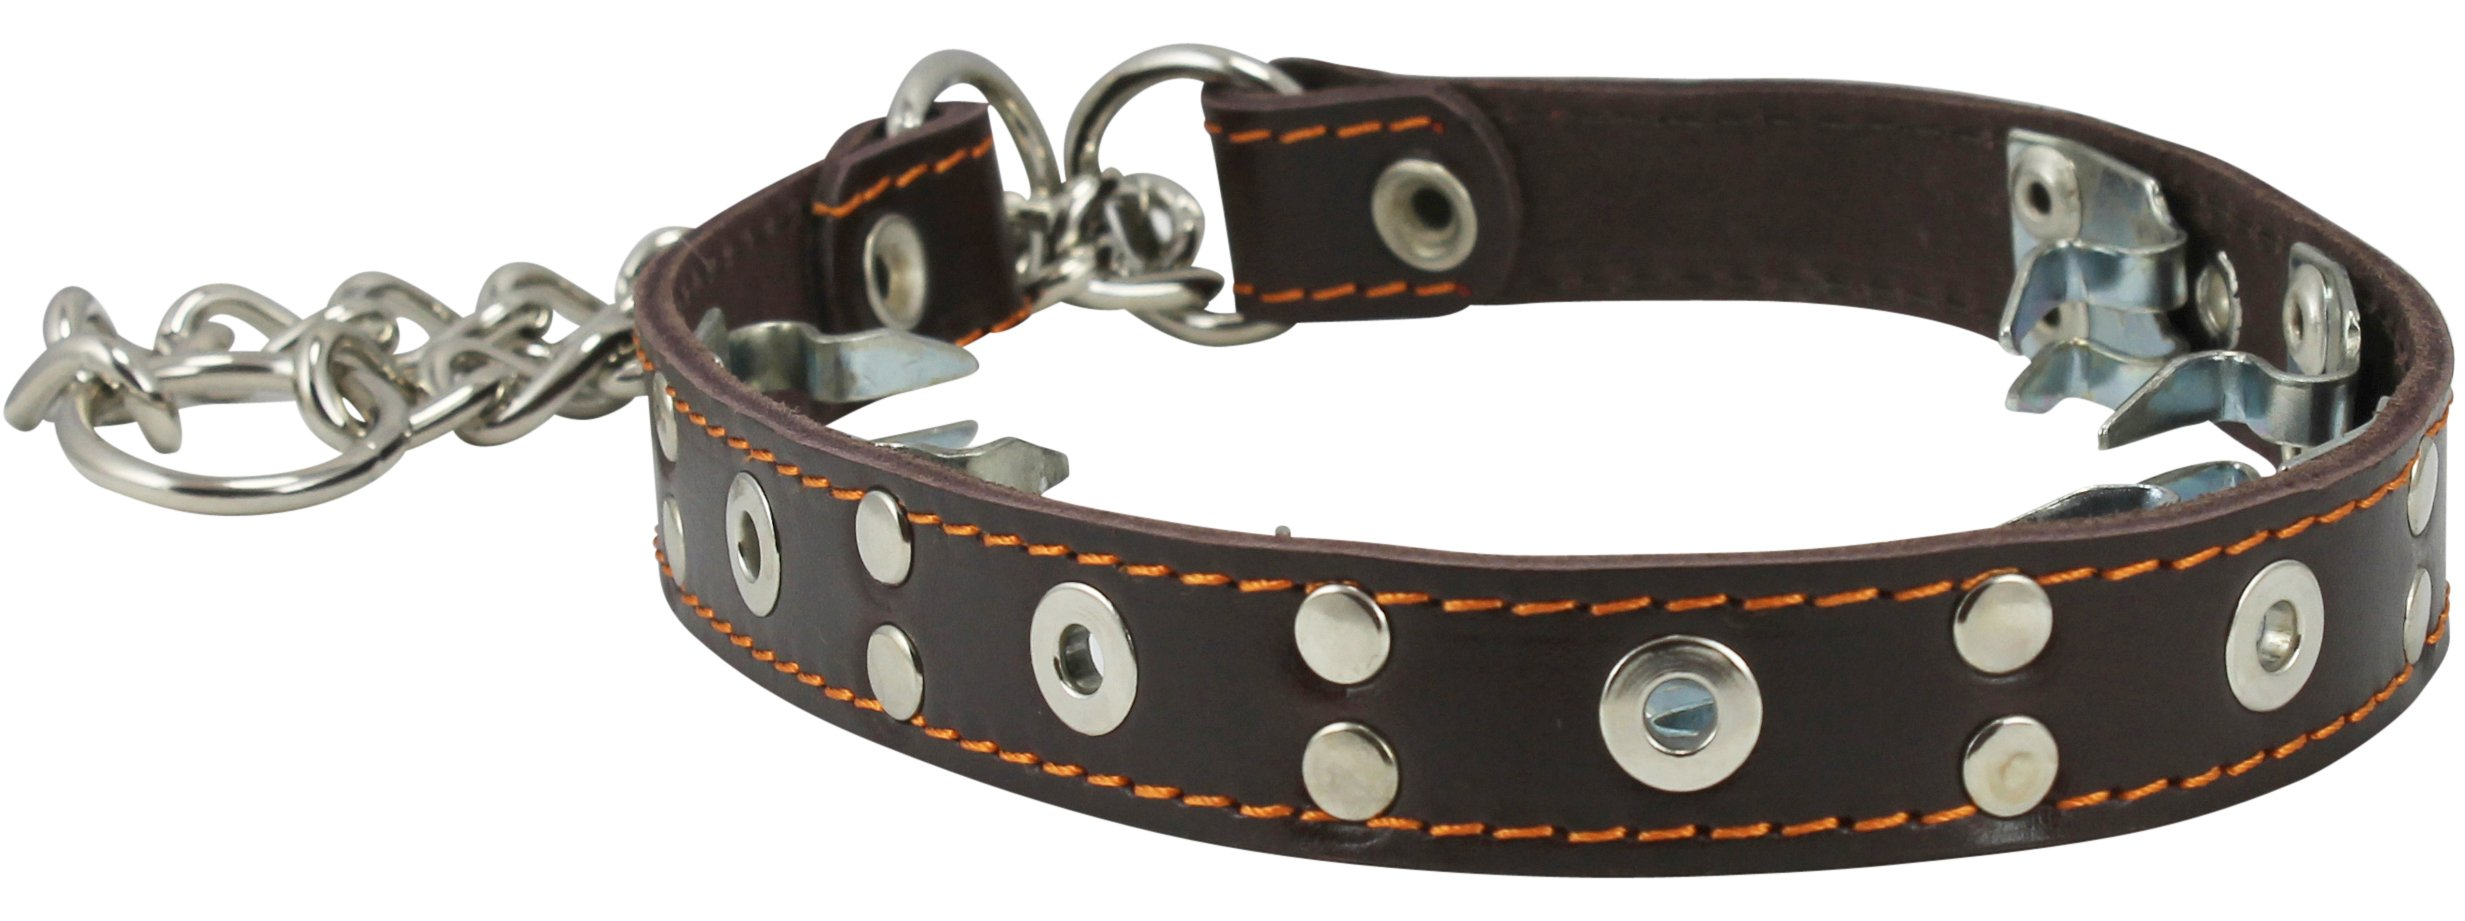 Dogs My Love Training Genuine Leather Pinch Martingale Dog Collar Studded 4mm Link Brown 3 Sizes (15.5''-19'')